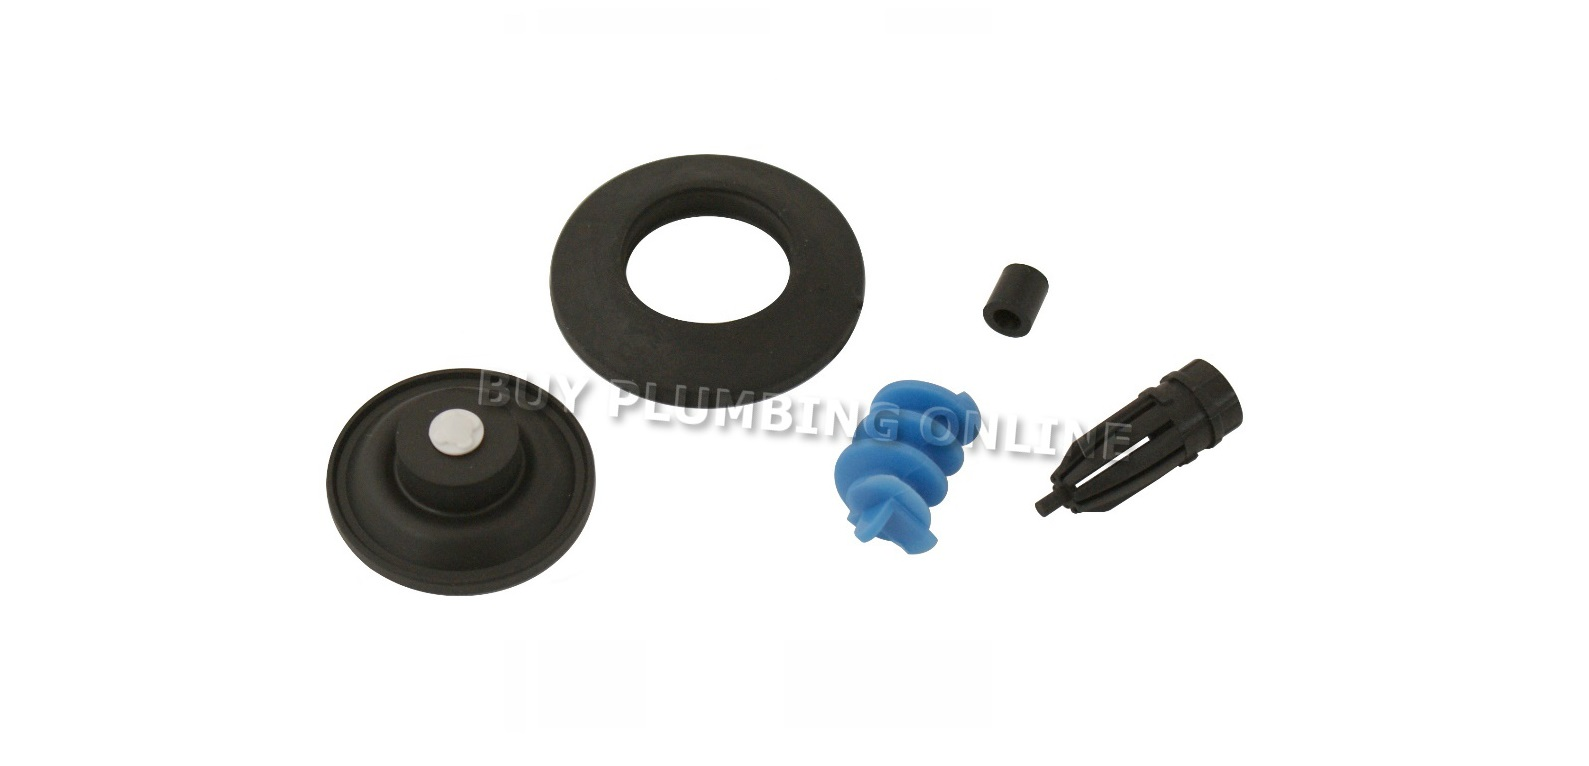 Washers & seals